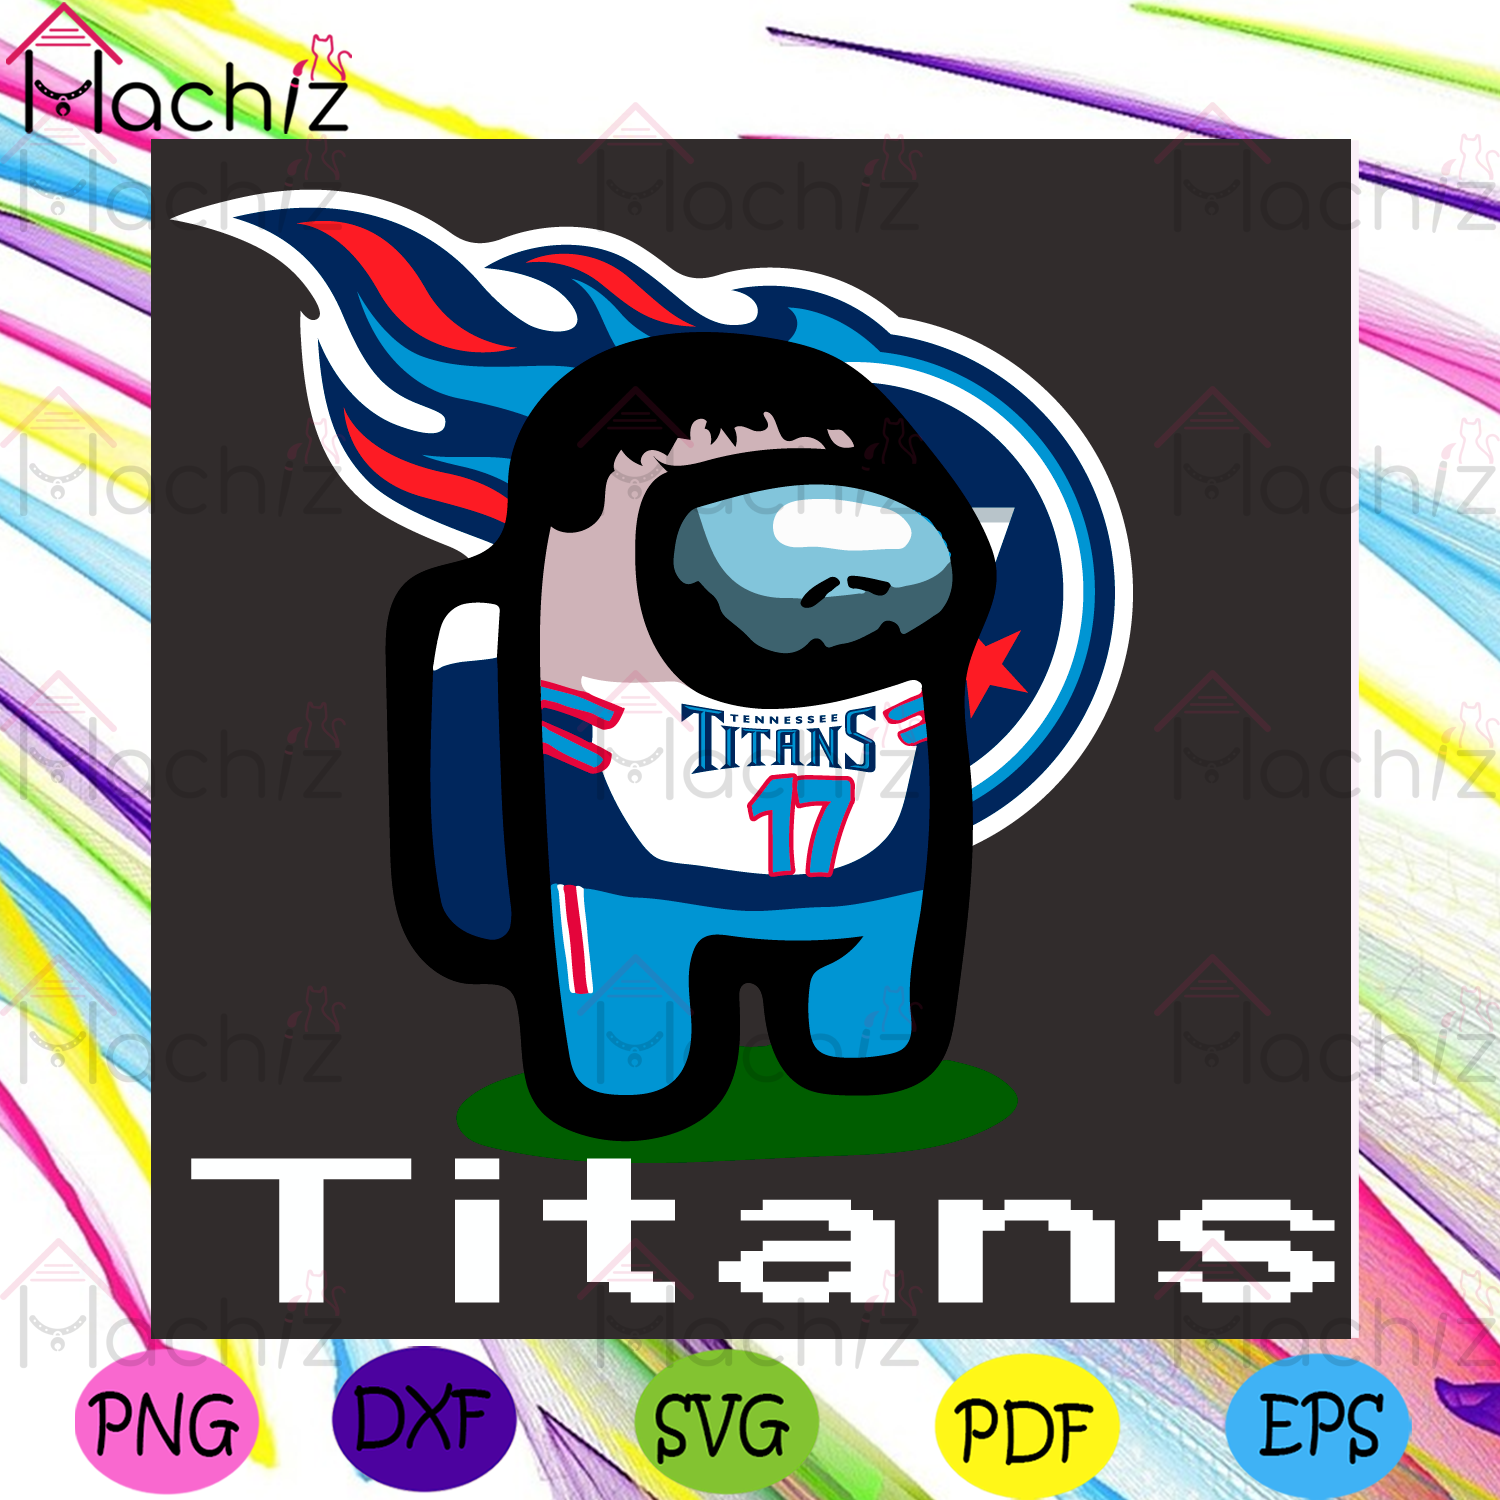 Tennessee Titans Among Us Svg, Sport Svg, Among Us Svg, Impostor Svg, Among Us Game Svg, Tennessee Titans Svg, Tennessee Titans Logo Svg, Titans Svg, Titans Team Svg, Titans Fans, Titans Football Svg, NFL Svg, Football Svg